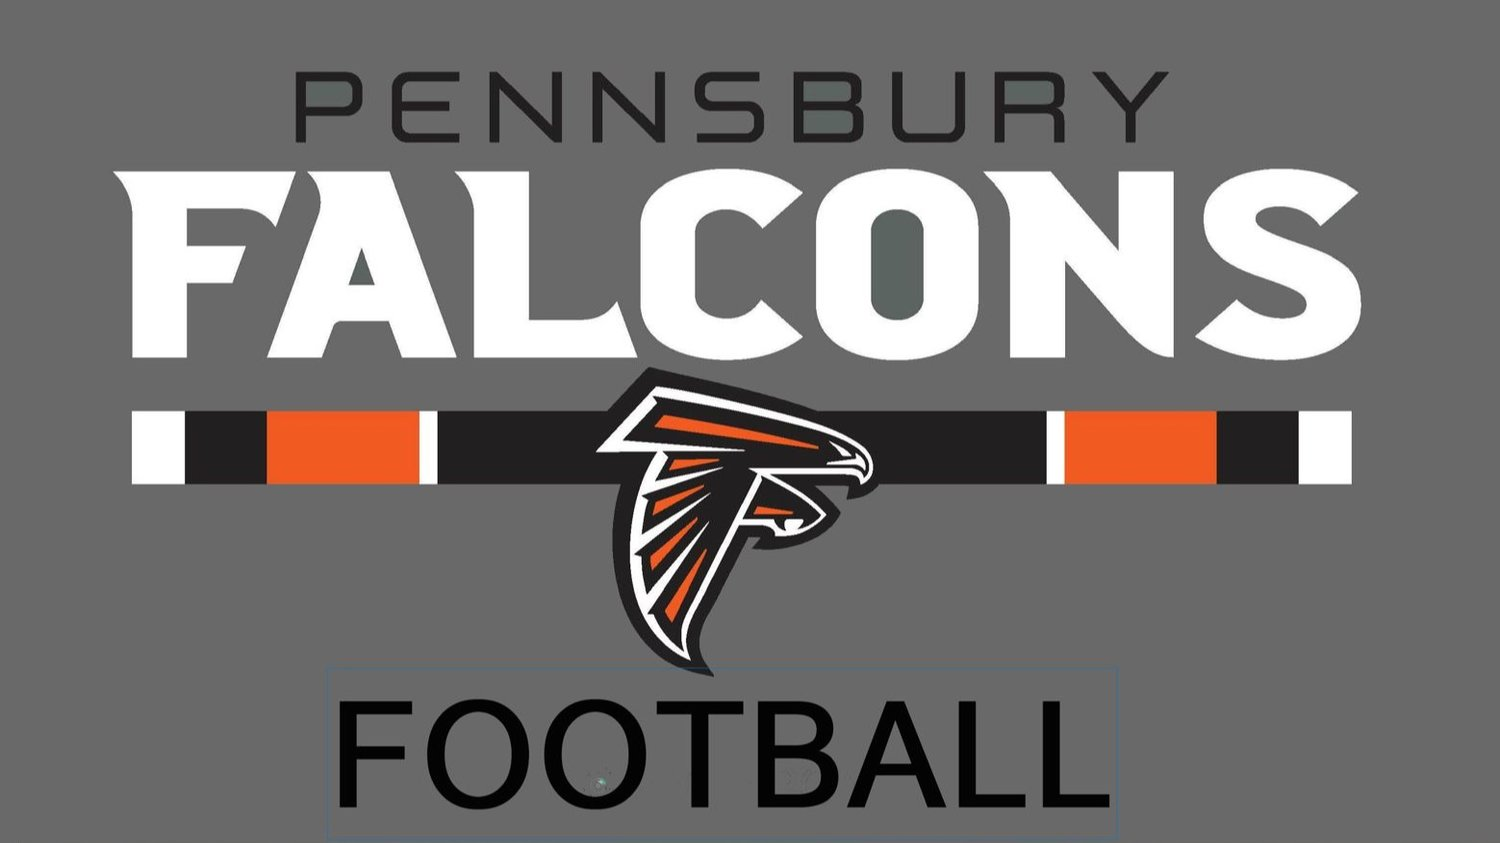 Pennsbury Falcon Football